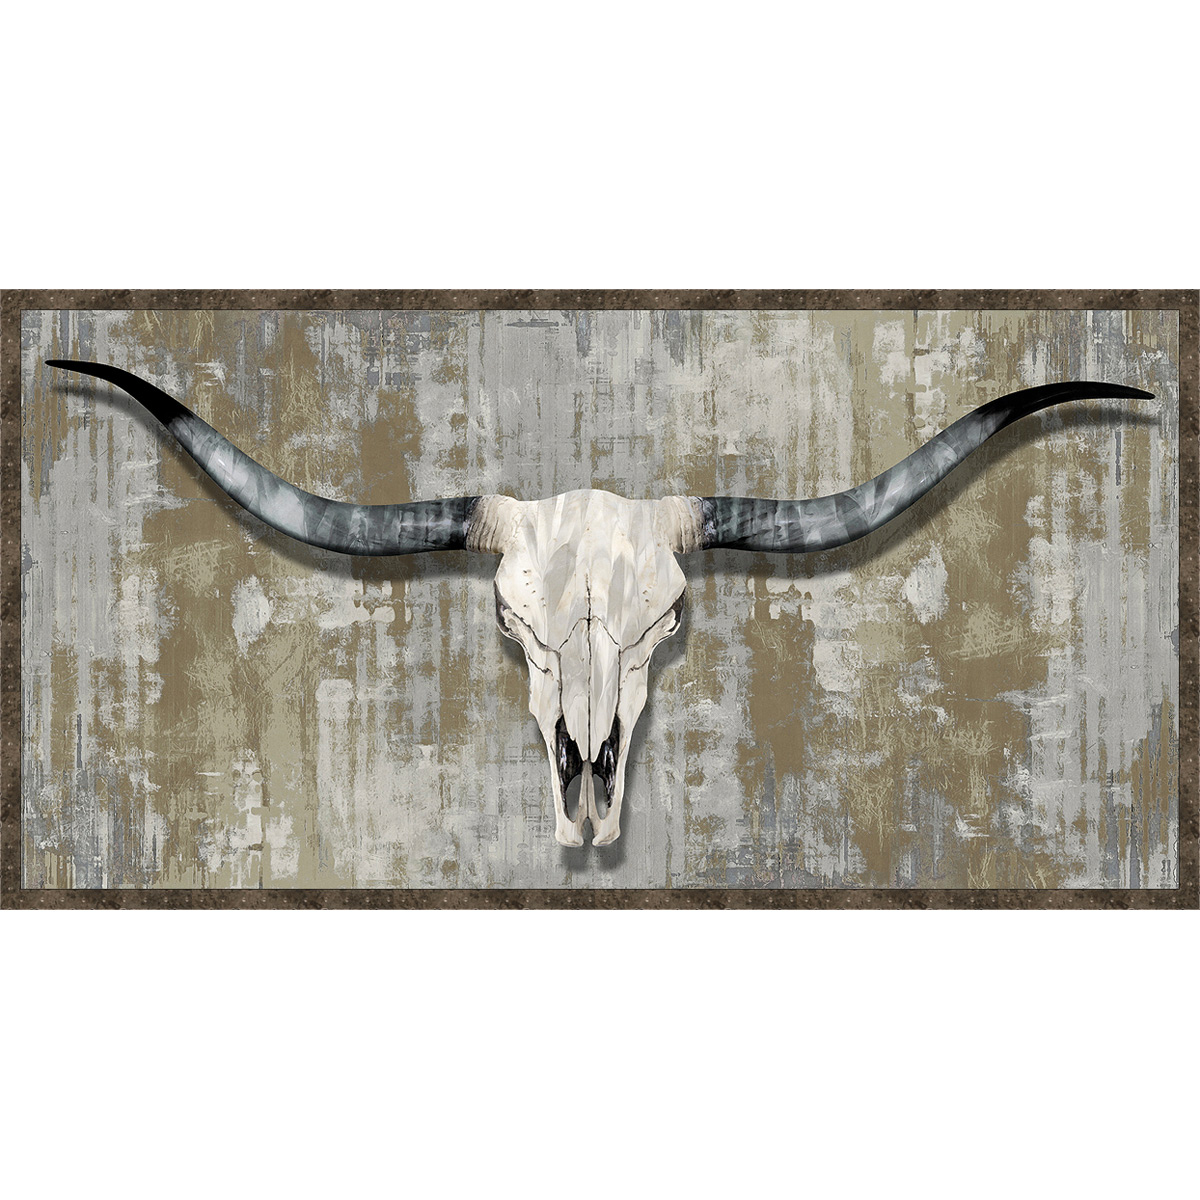 Distressed longhorn skull framed wall art